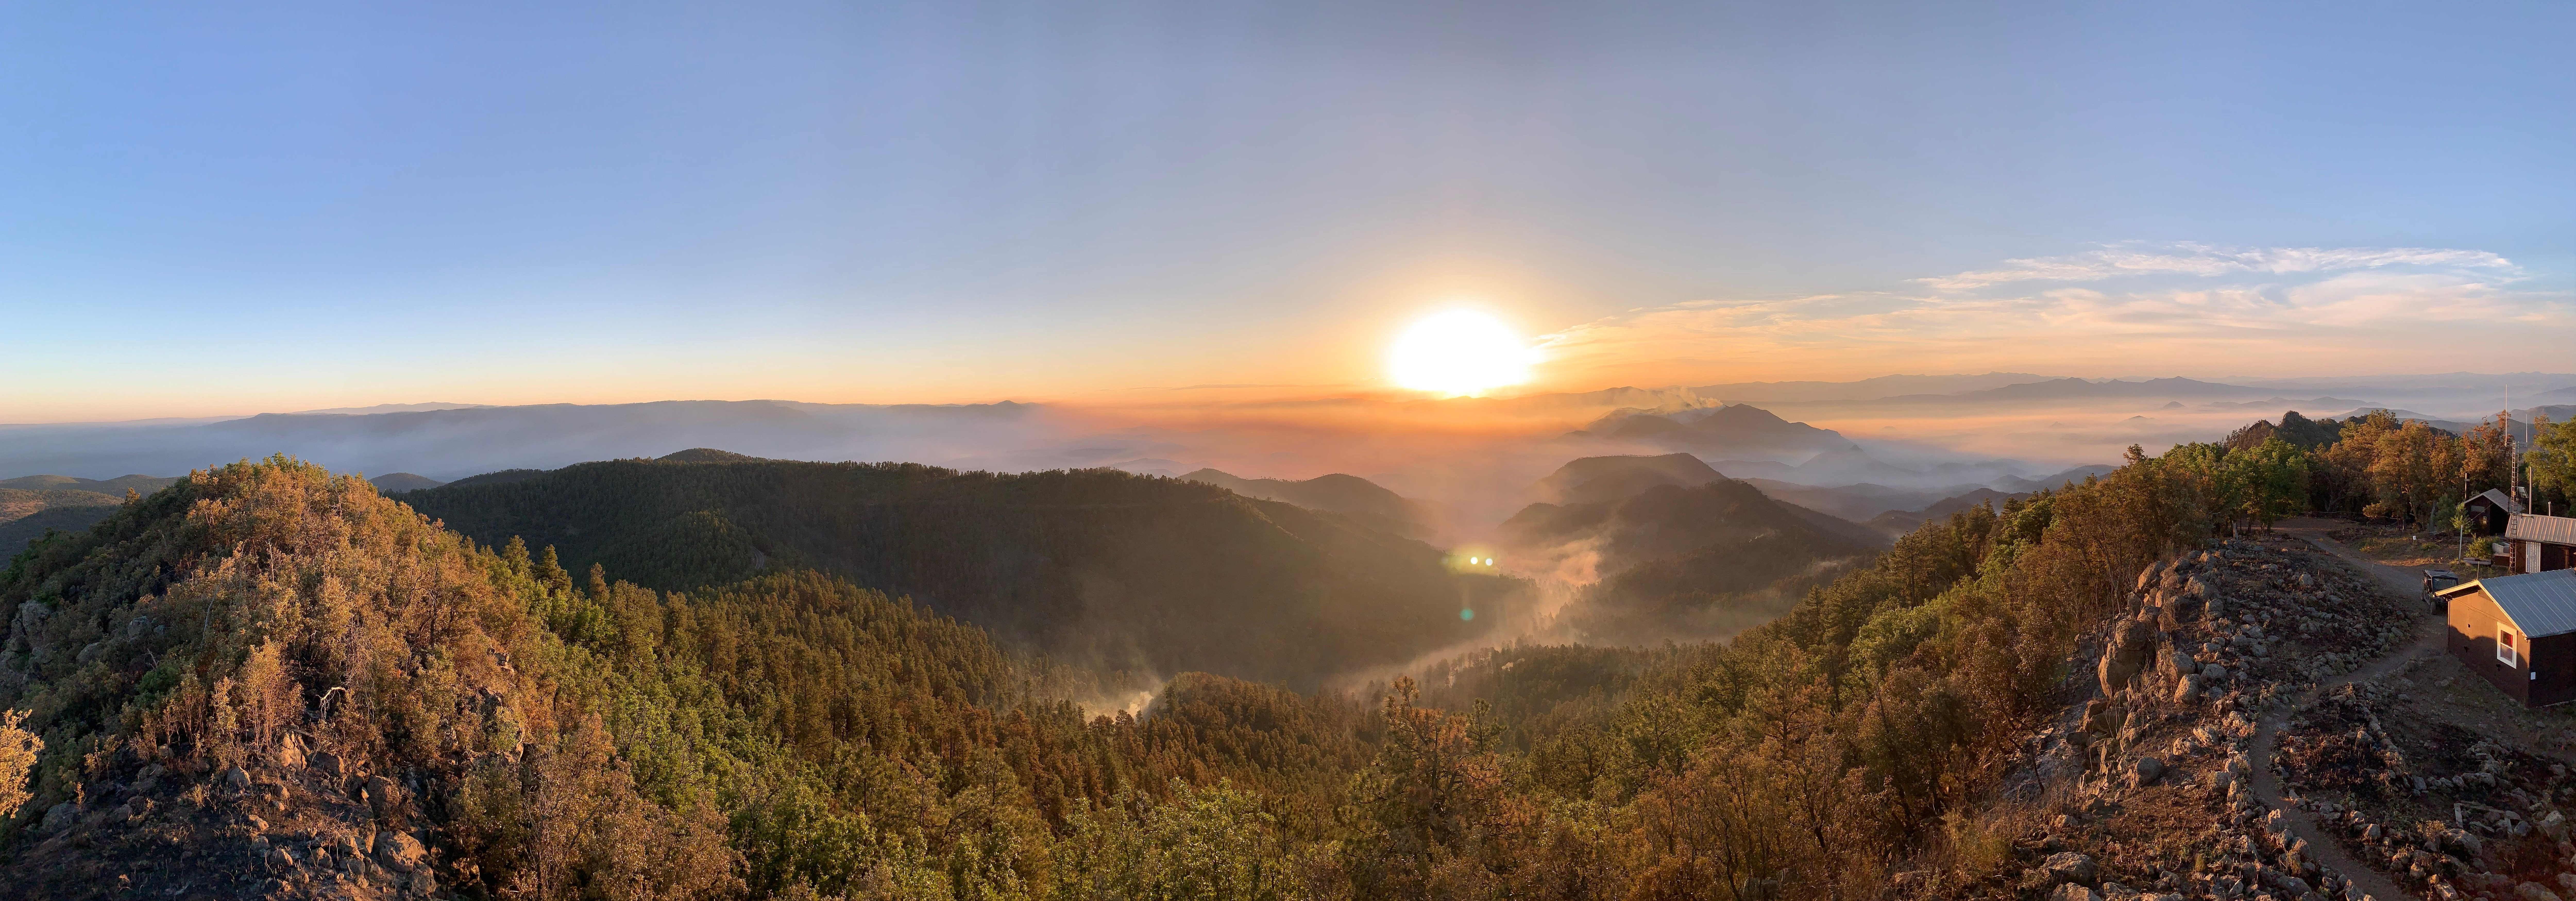 An early morning in a valley and rolling mountains blanketed in smoke. The sunrise colors, oranges and blues, and the sun, large, yellow, and bright gives off an ethereal soft glow from behind a thin veil of smoke as it sinks below the horizon.